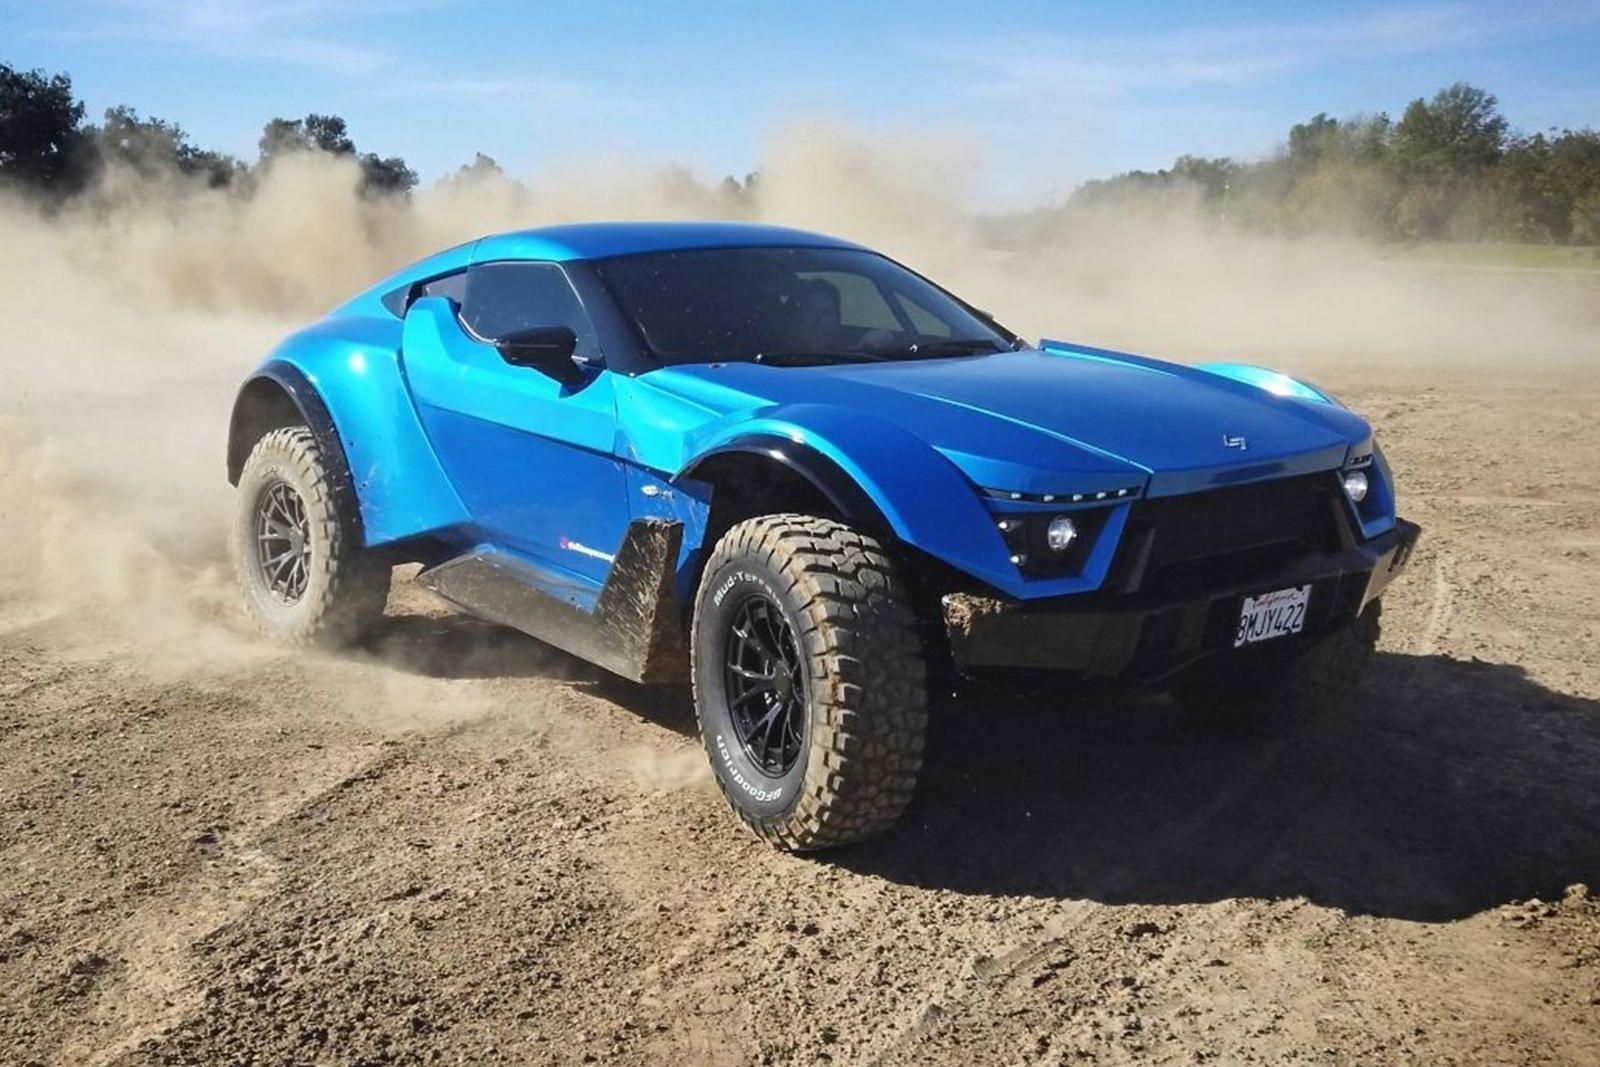 Insane 700 Hp All Terrain Supercar Is 500 000 Well Spent In 2020 Super Cars Offroad Beach Buggy